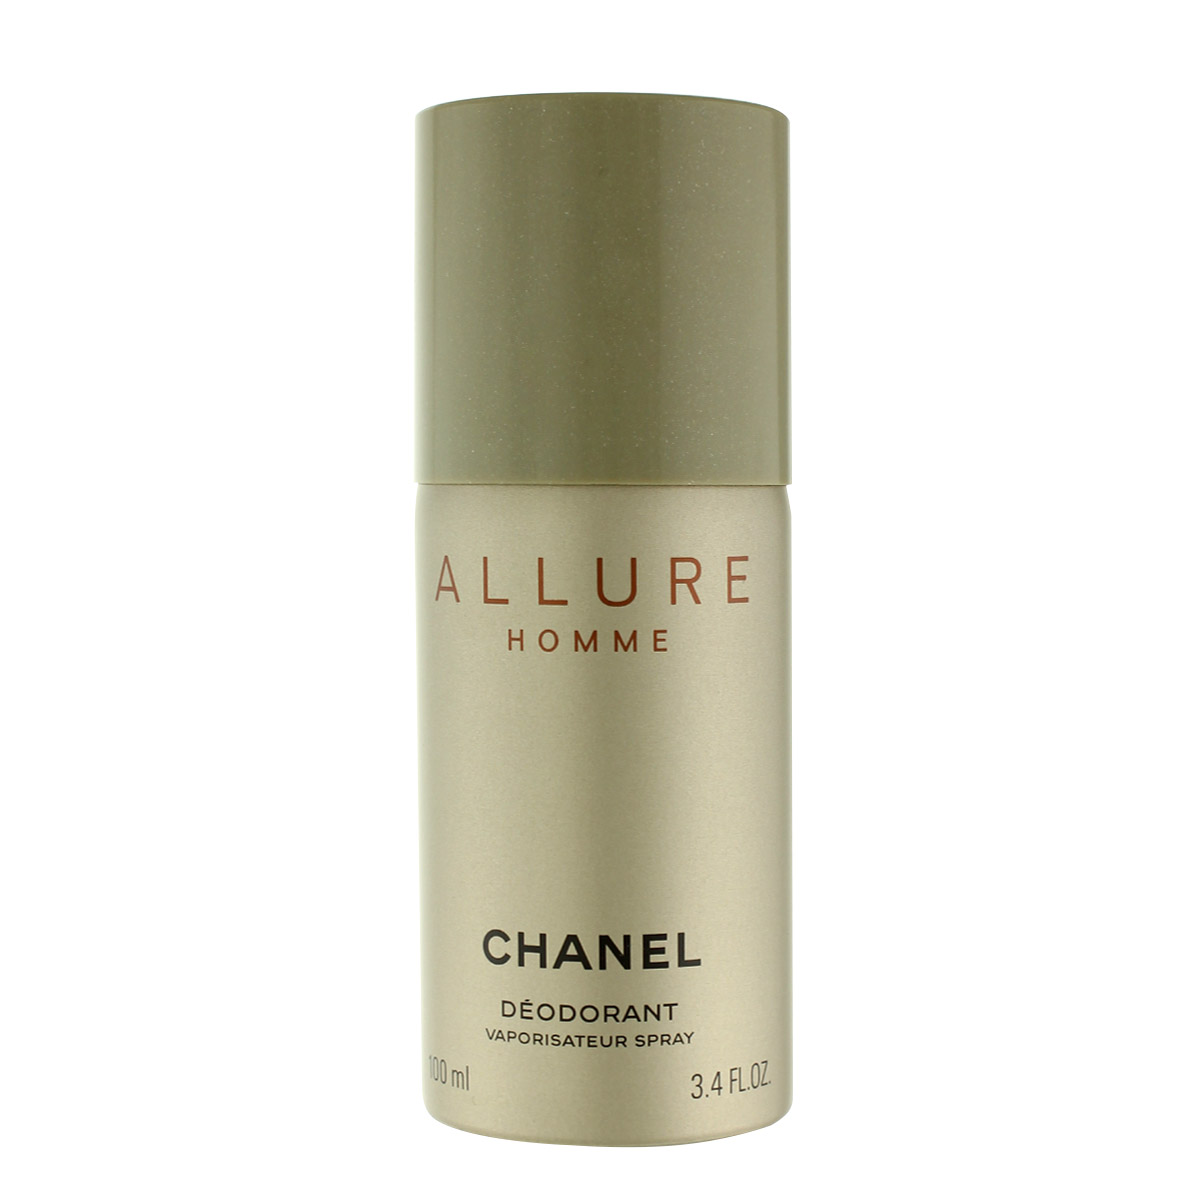 Chanel Allure Homme DEO ve spreji 100 ml M